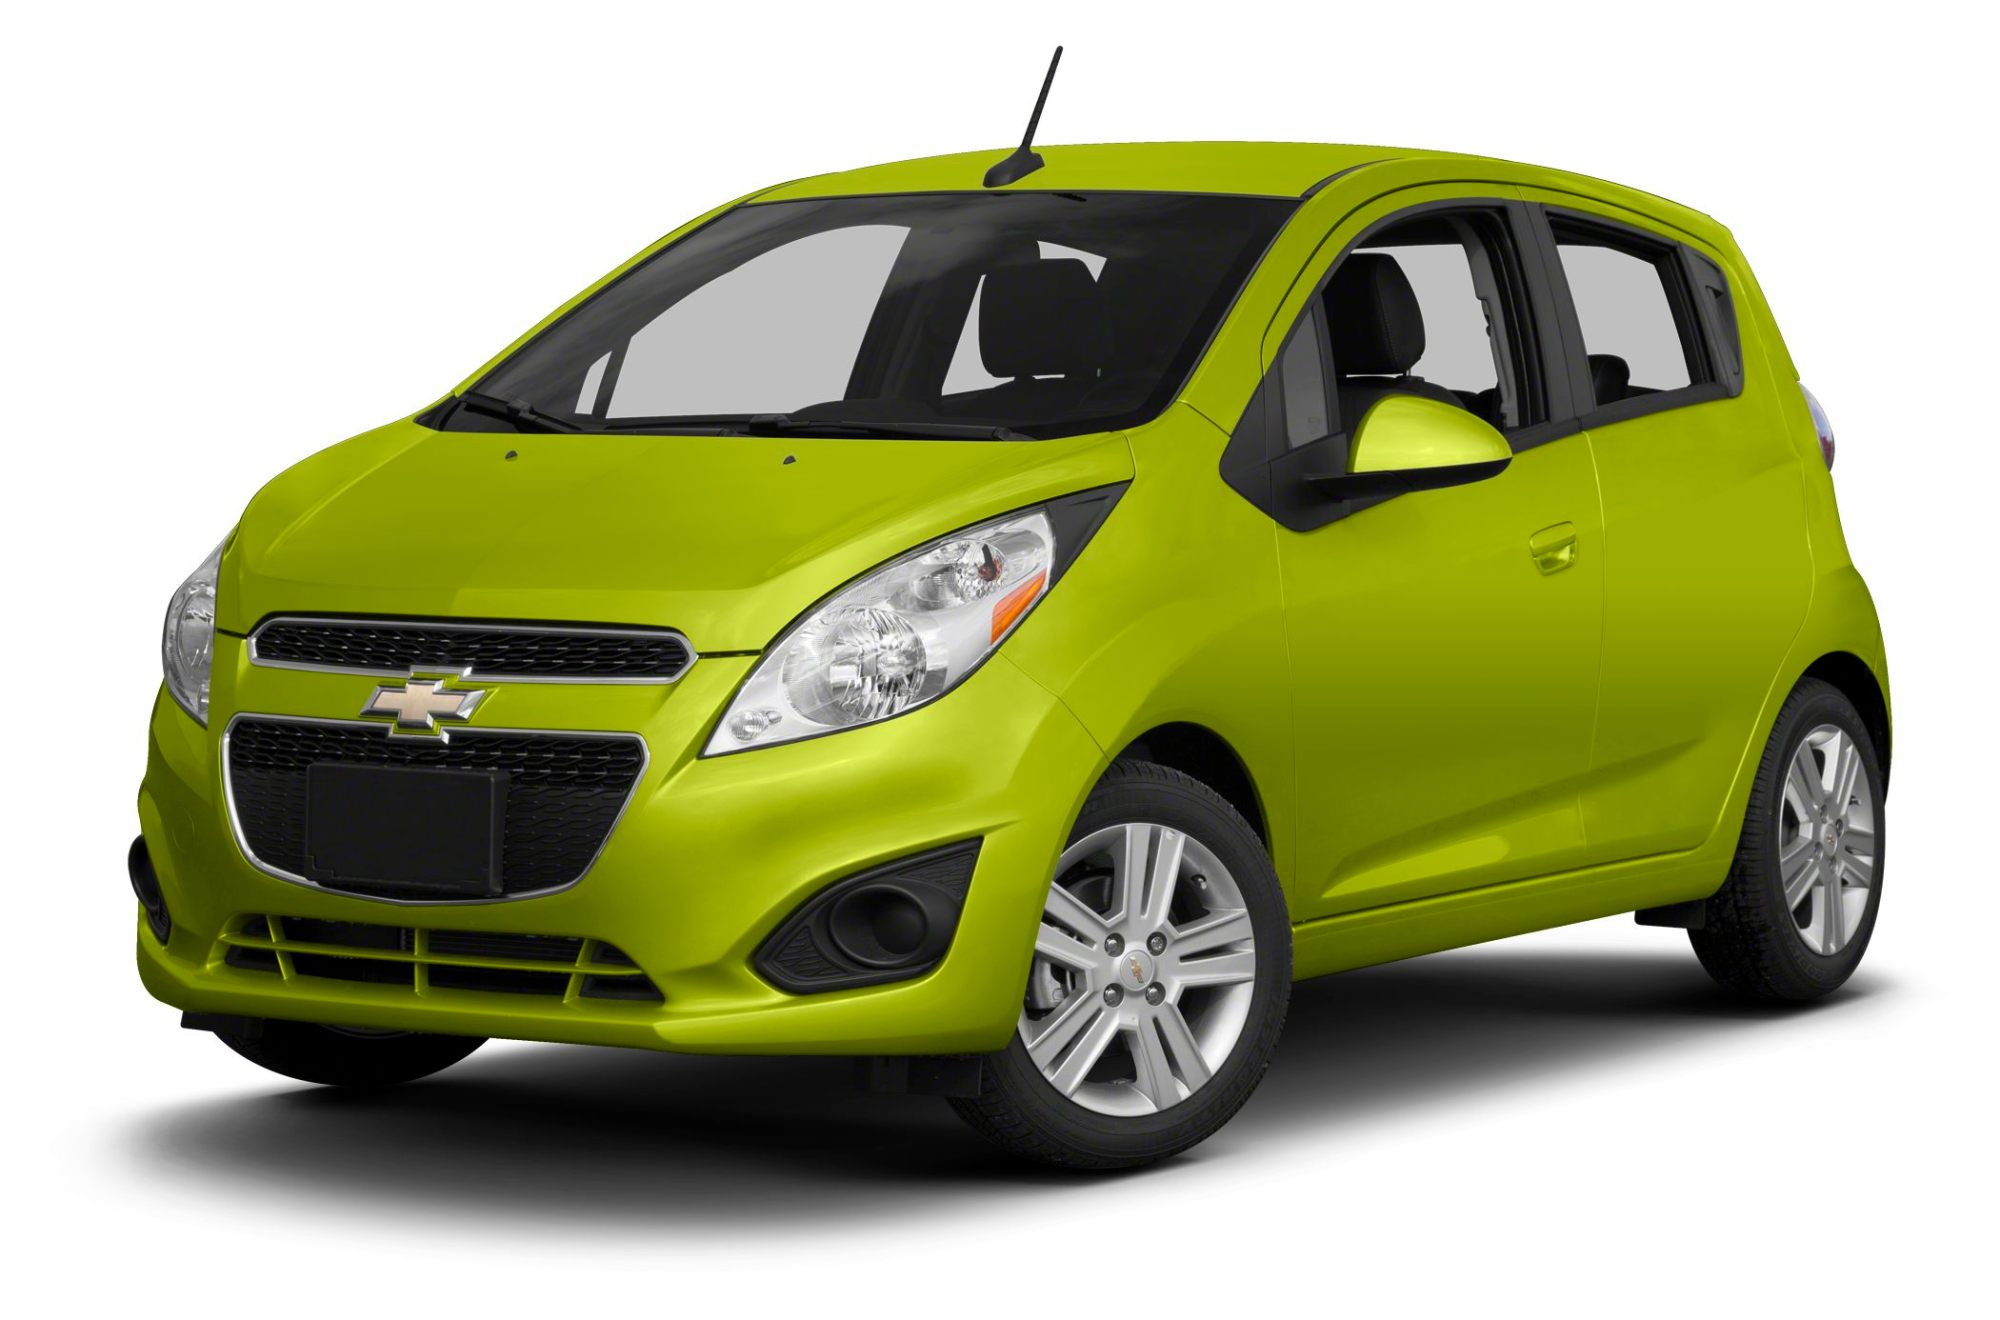 hight resolution of 2013 chevrolet spark wiring diagram wiring diagrams scematic fiat 500 2013 chevrolet spark information 2001 chevy